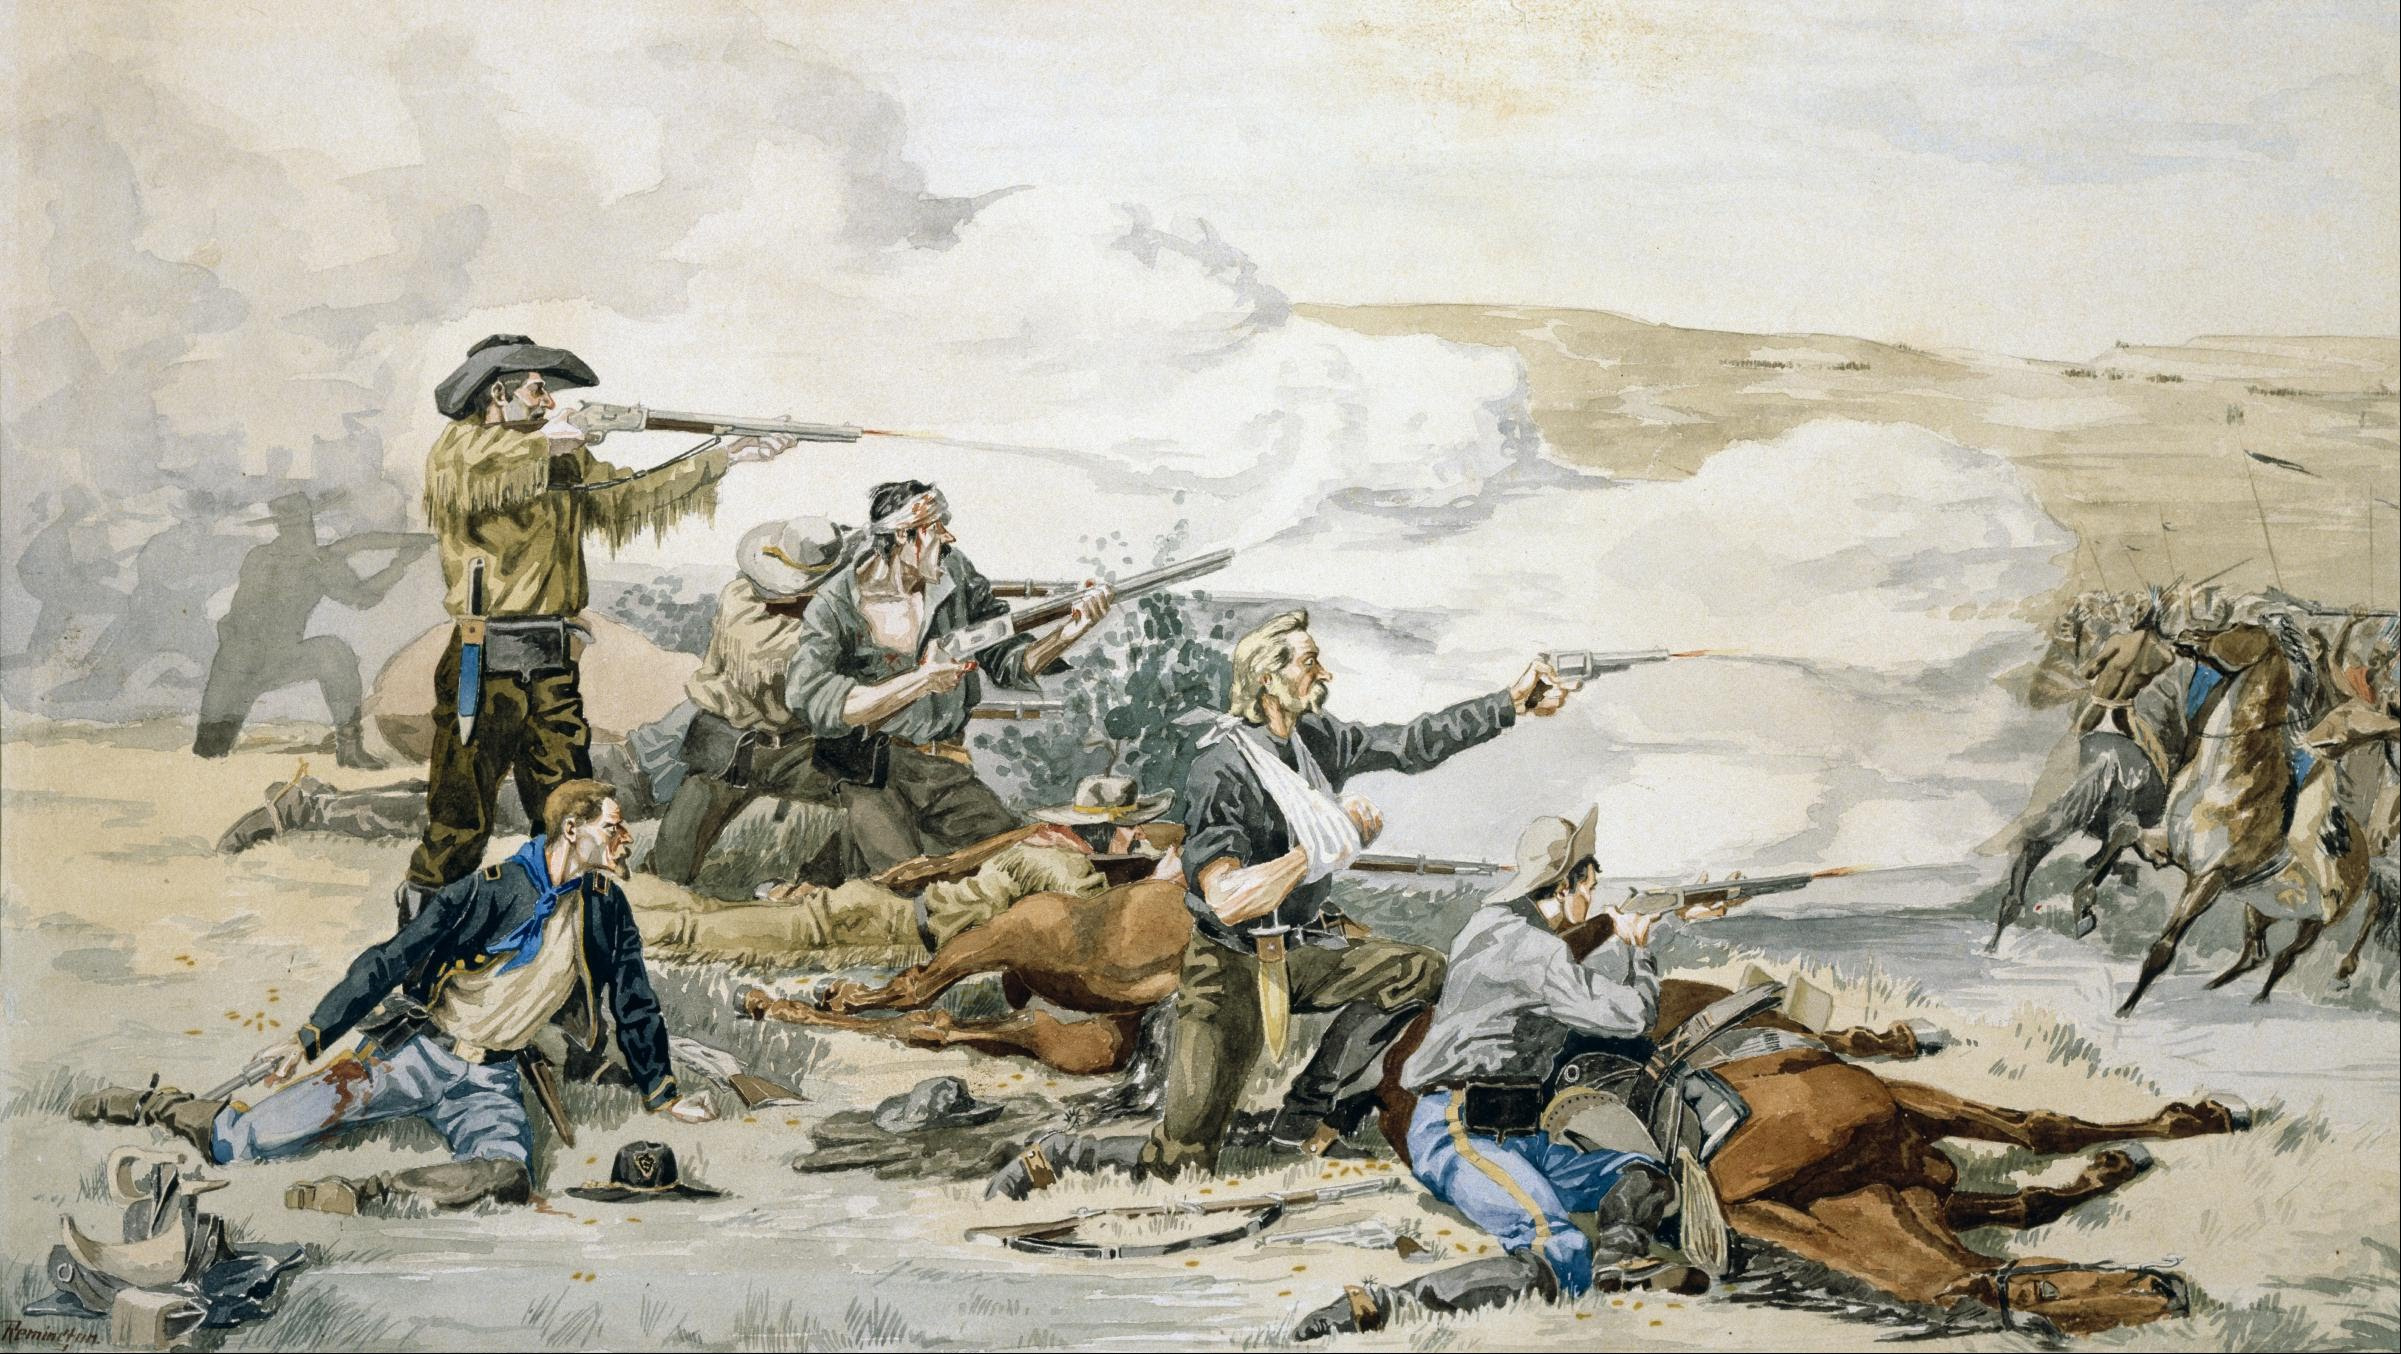 The Battle of Beecher Island — How a Small Frontier Clash Became a Harbinger of Decades of War on the American Plains - MilitaryHistoryNow.com